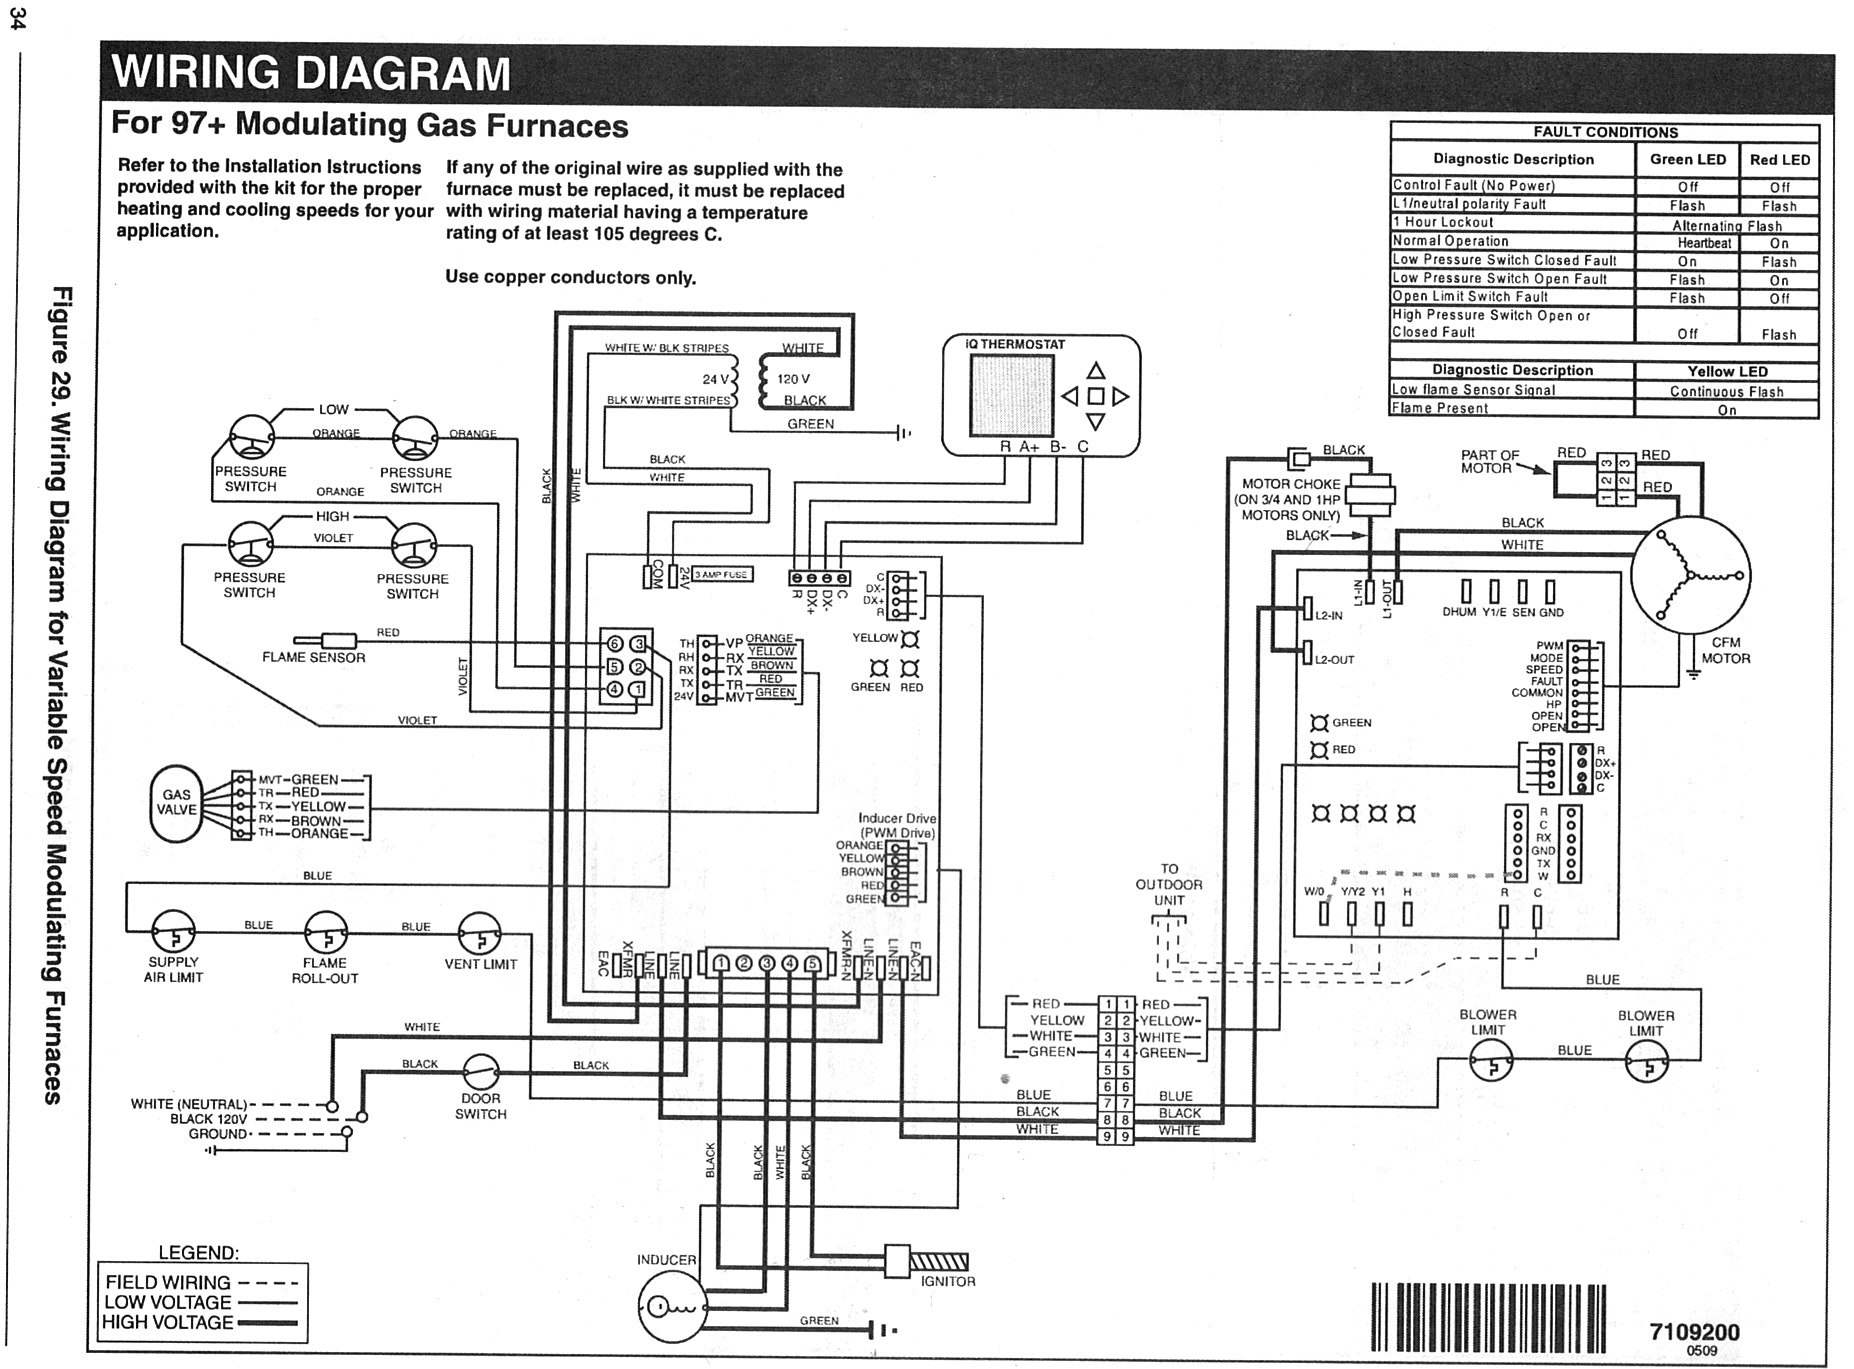 rheem oil furnace wiring diagram Collection-rheem oil furnace wiring diagram Collection Wiring Diagram for Rheem Furnace Best Rheem Heat Pump 19-j